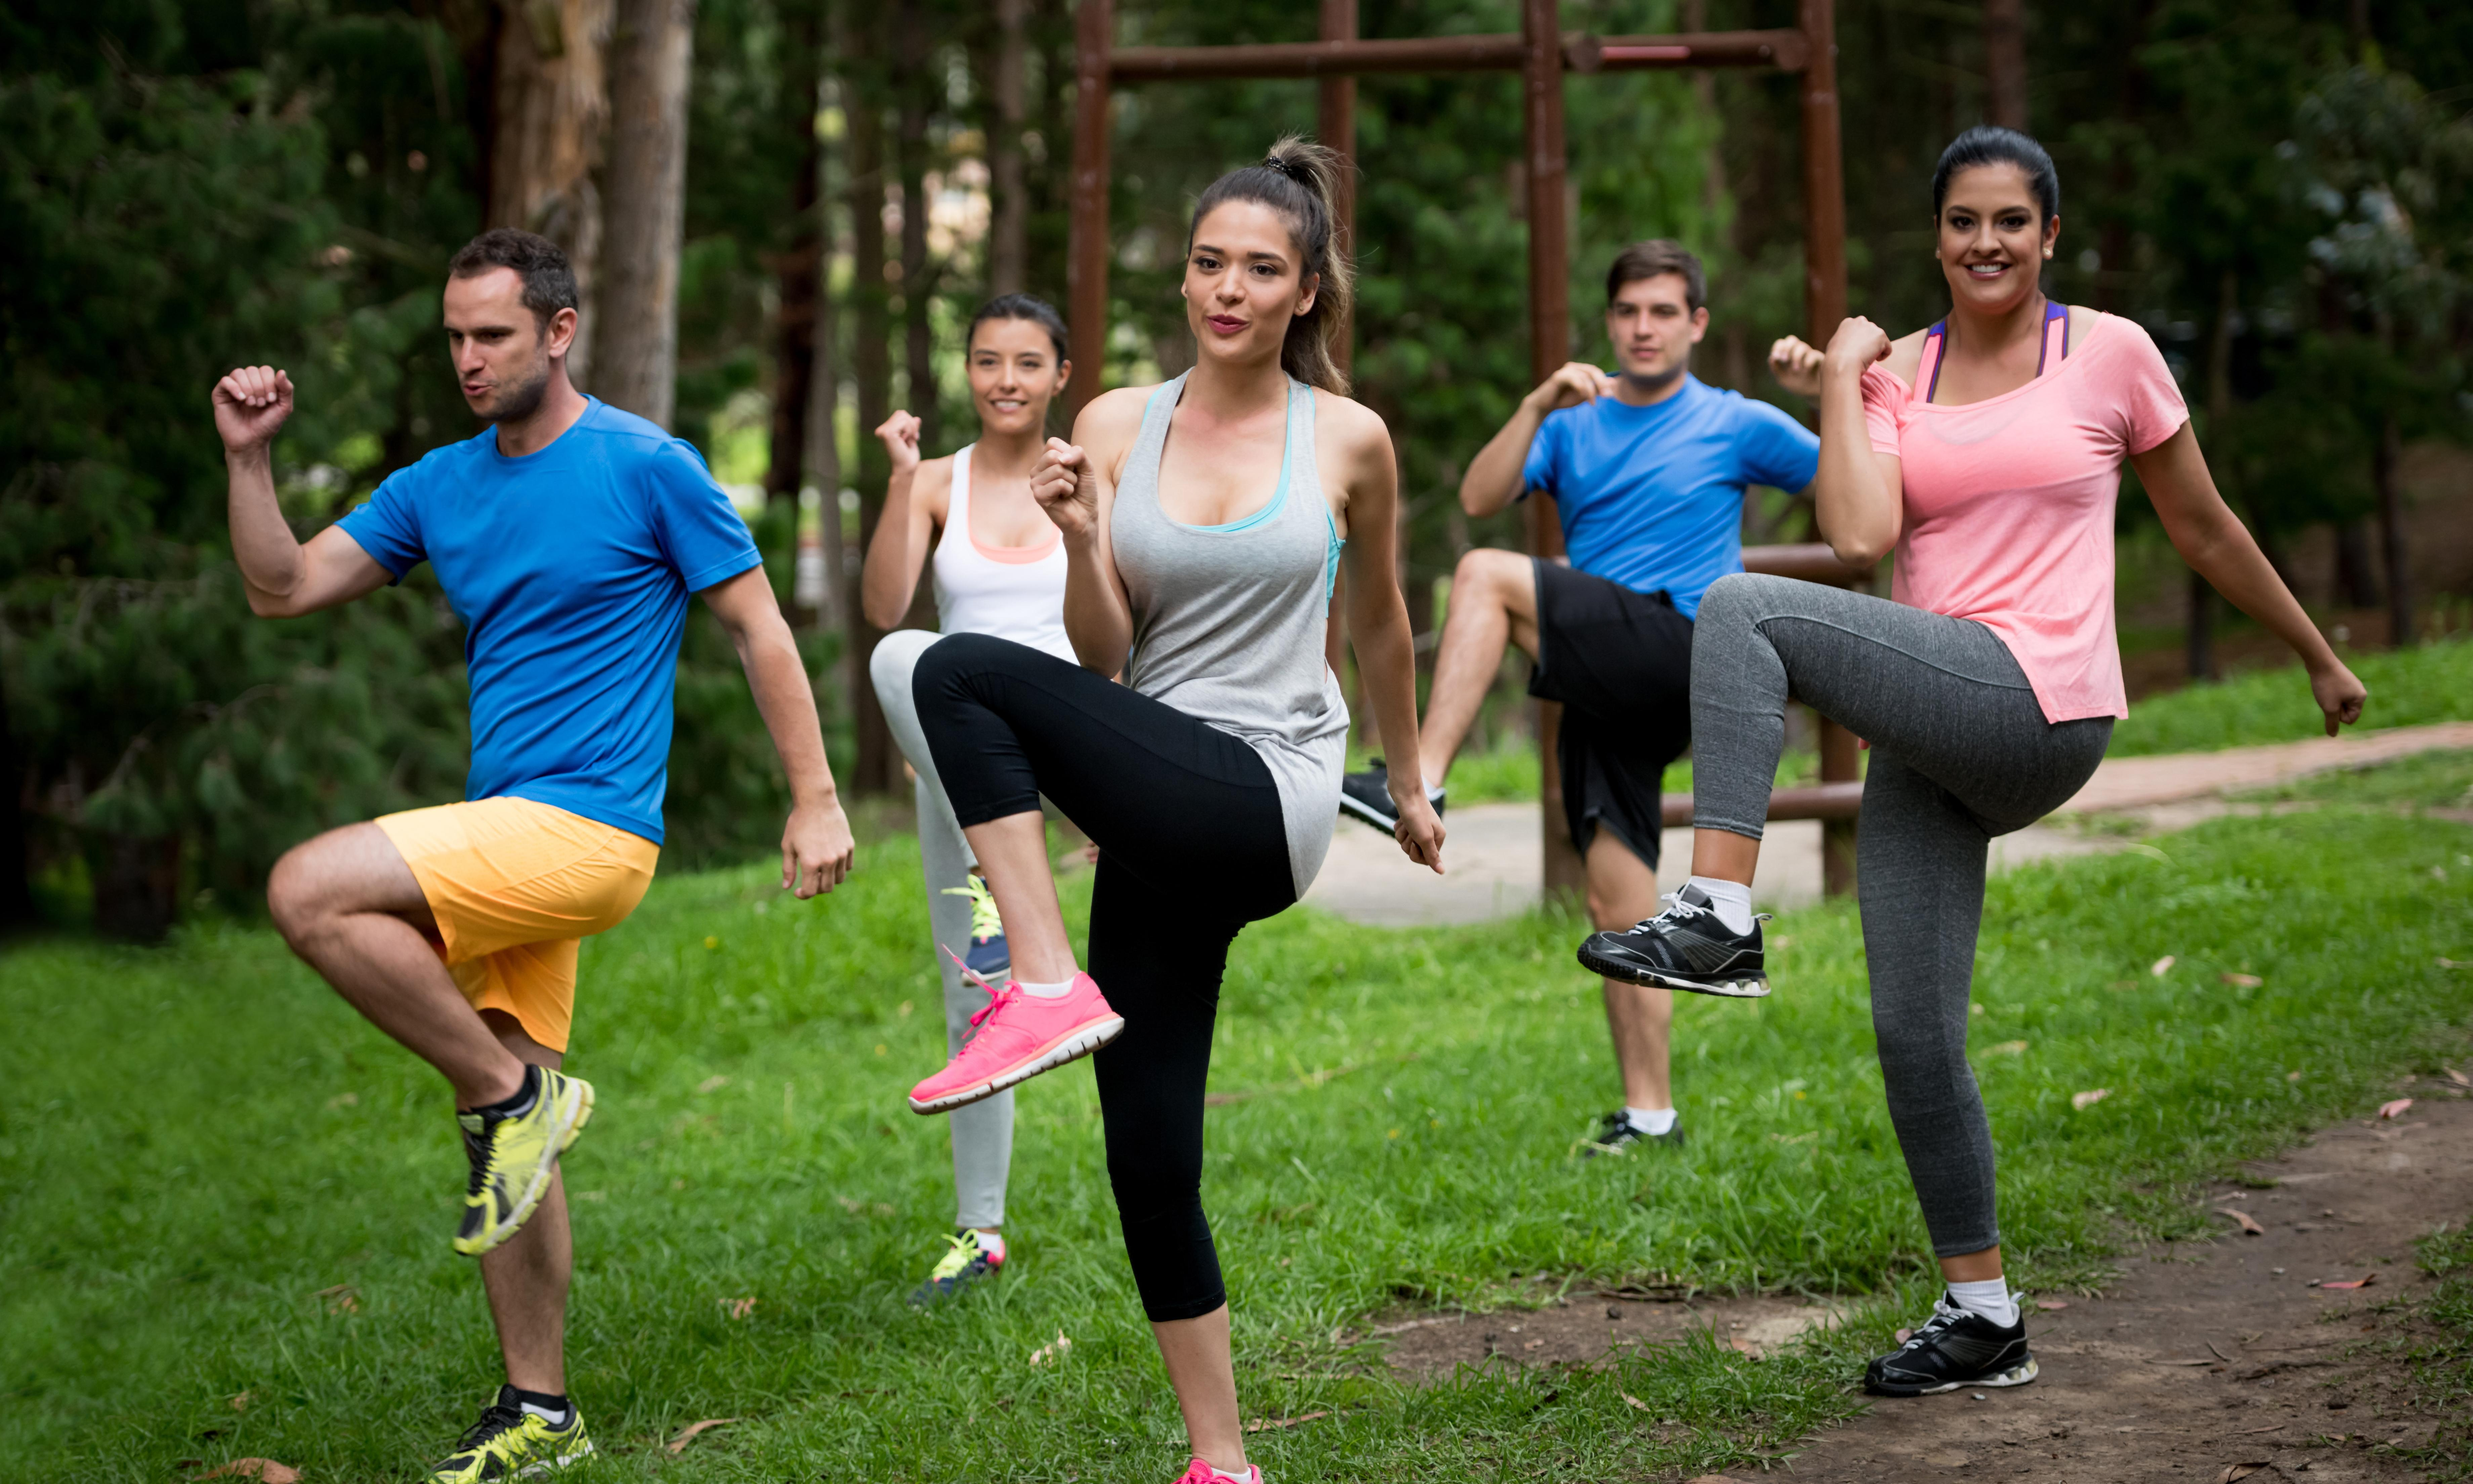 Let's stop pretending exercise is fun. Like work, you've just got to do it